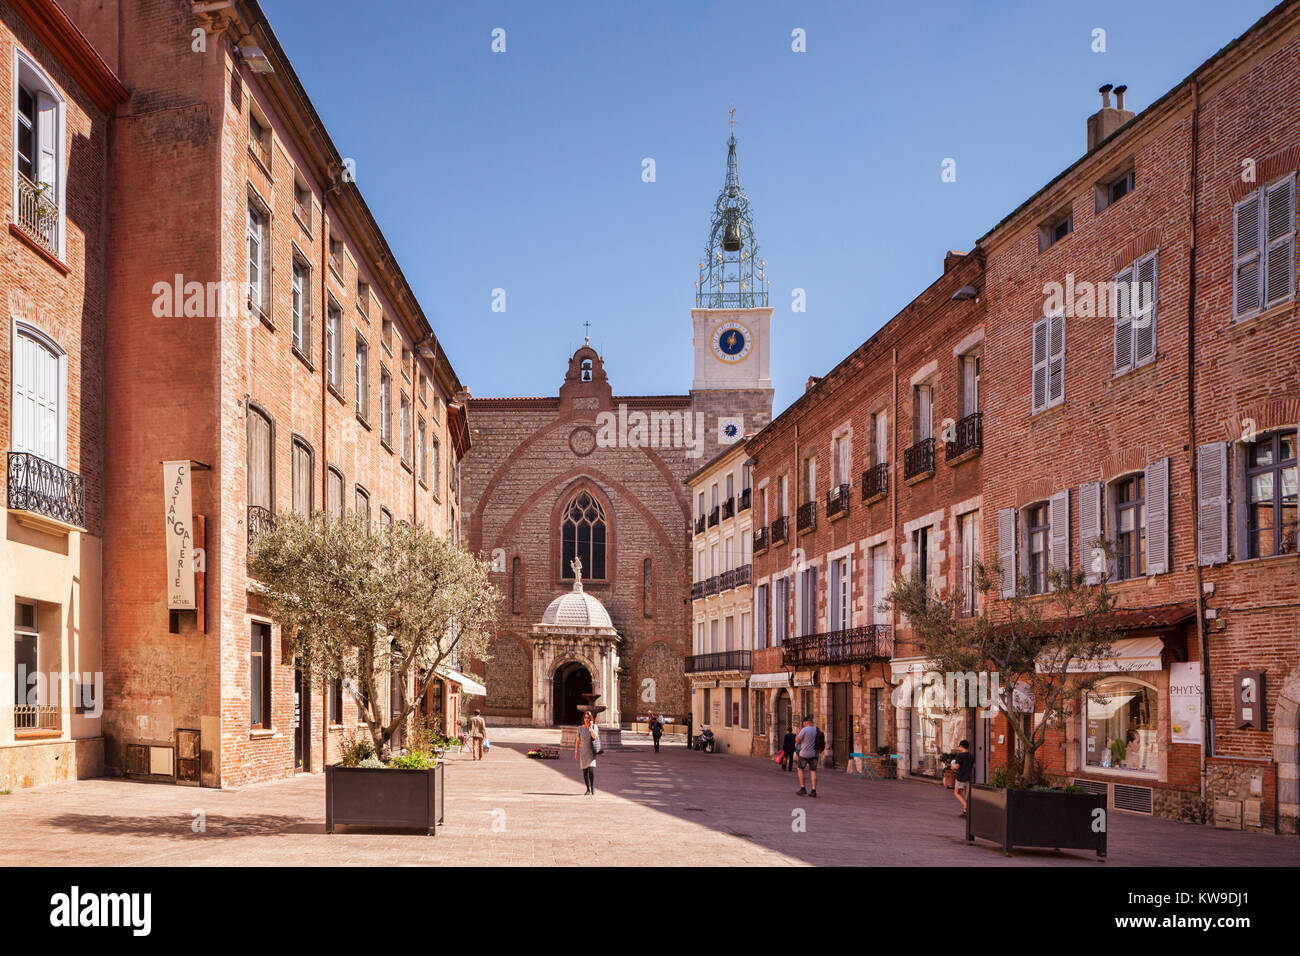 Place Leon Gambetta and the Cathedral Basilica of Saint John the Baptist, Perpignan, Languedoc-Roussillon, Pyrenees - Stock Image